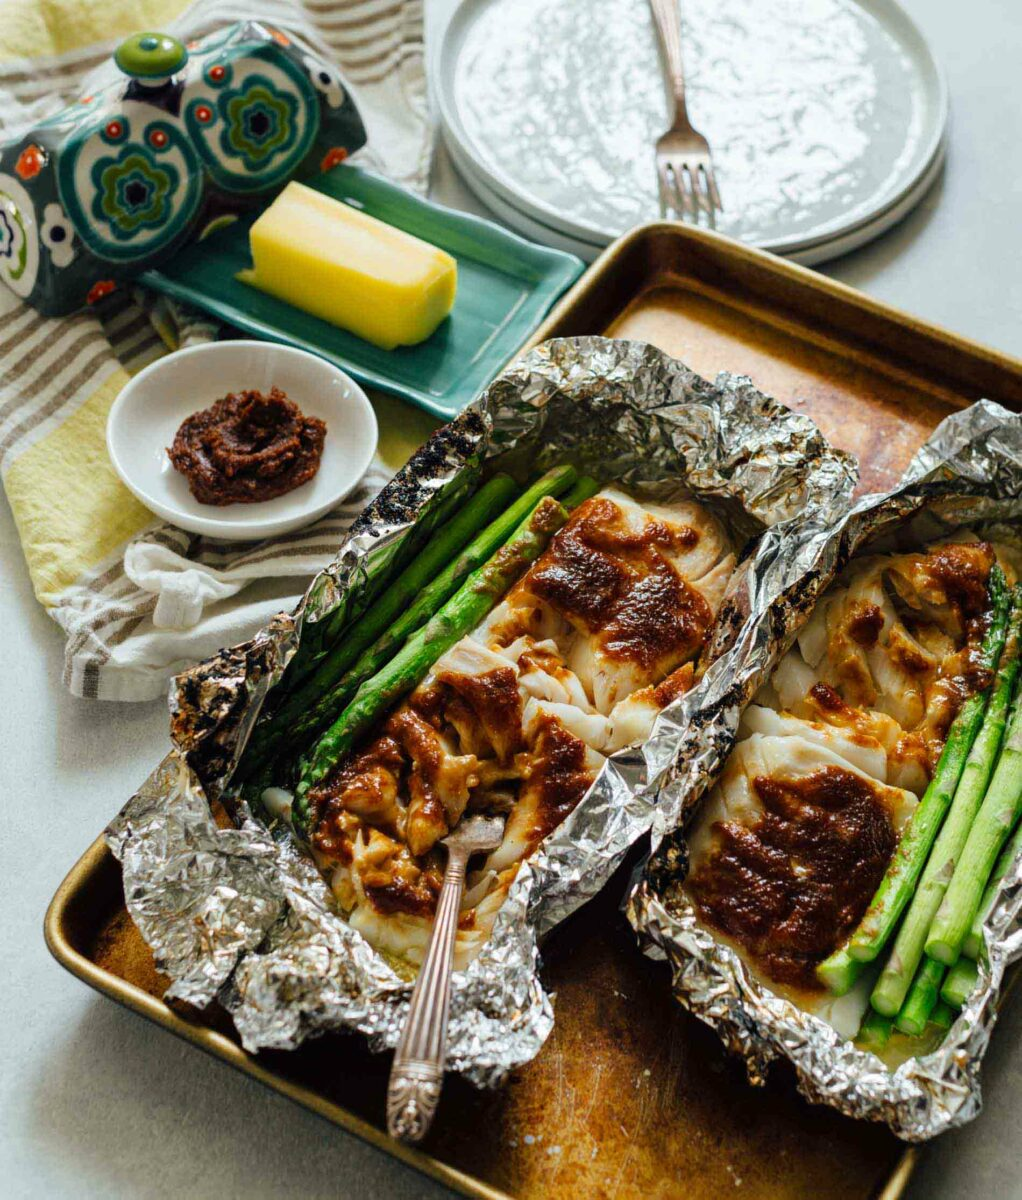 Miso Butter Cod Foil Packets Cod Recipe With Miso In Foil Packets